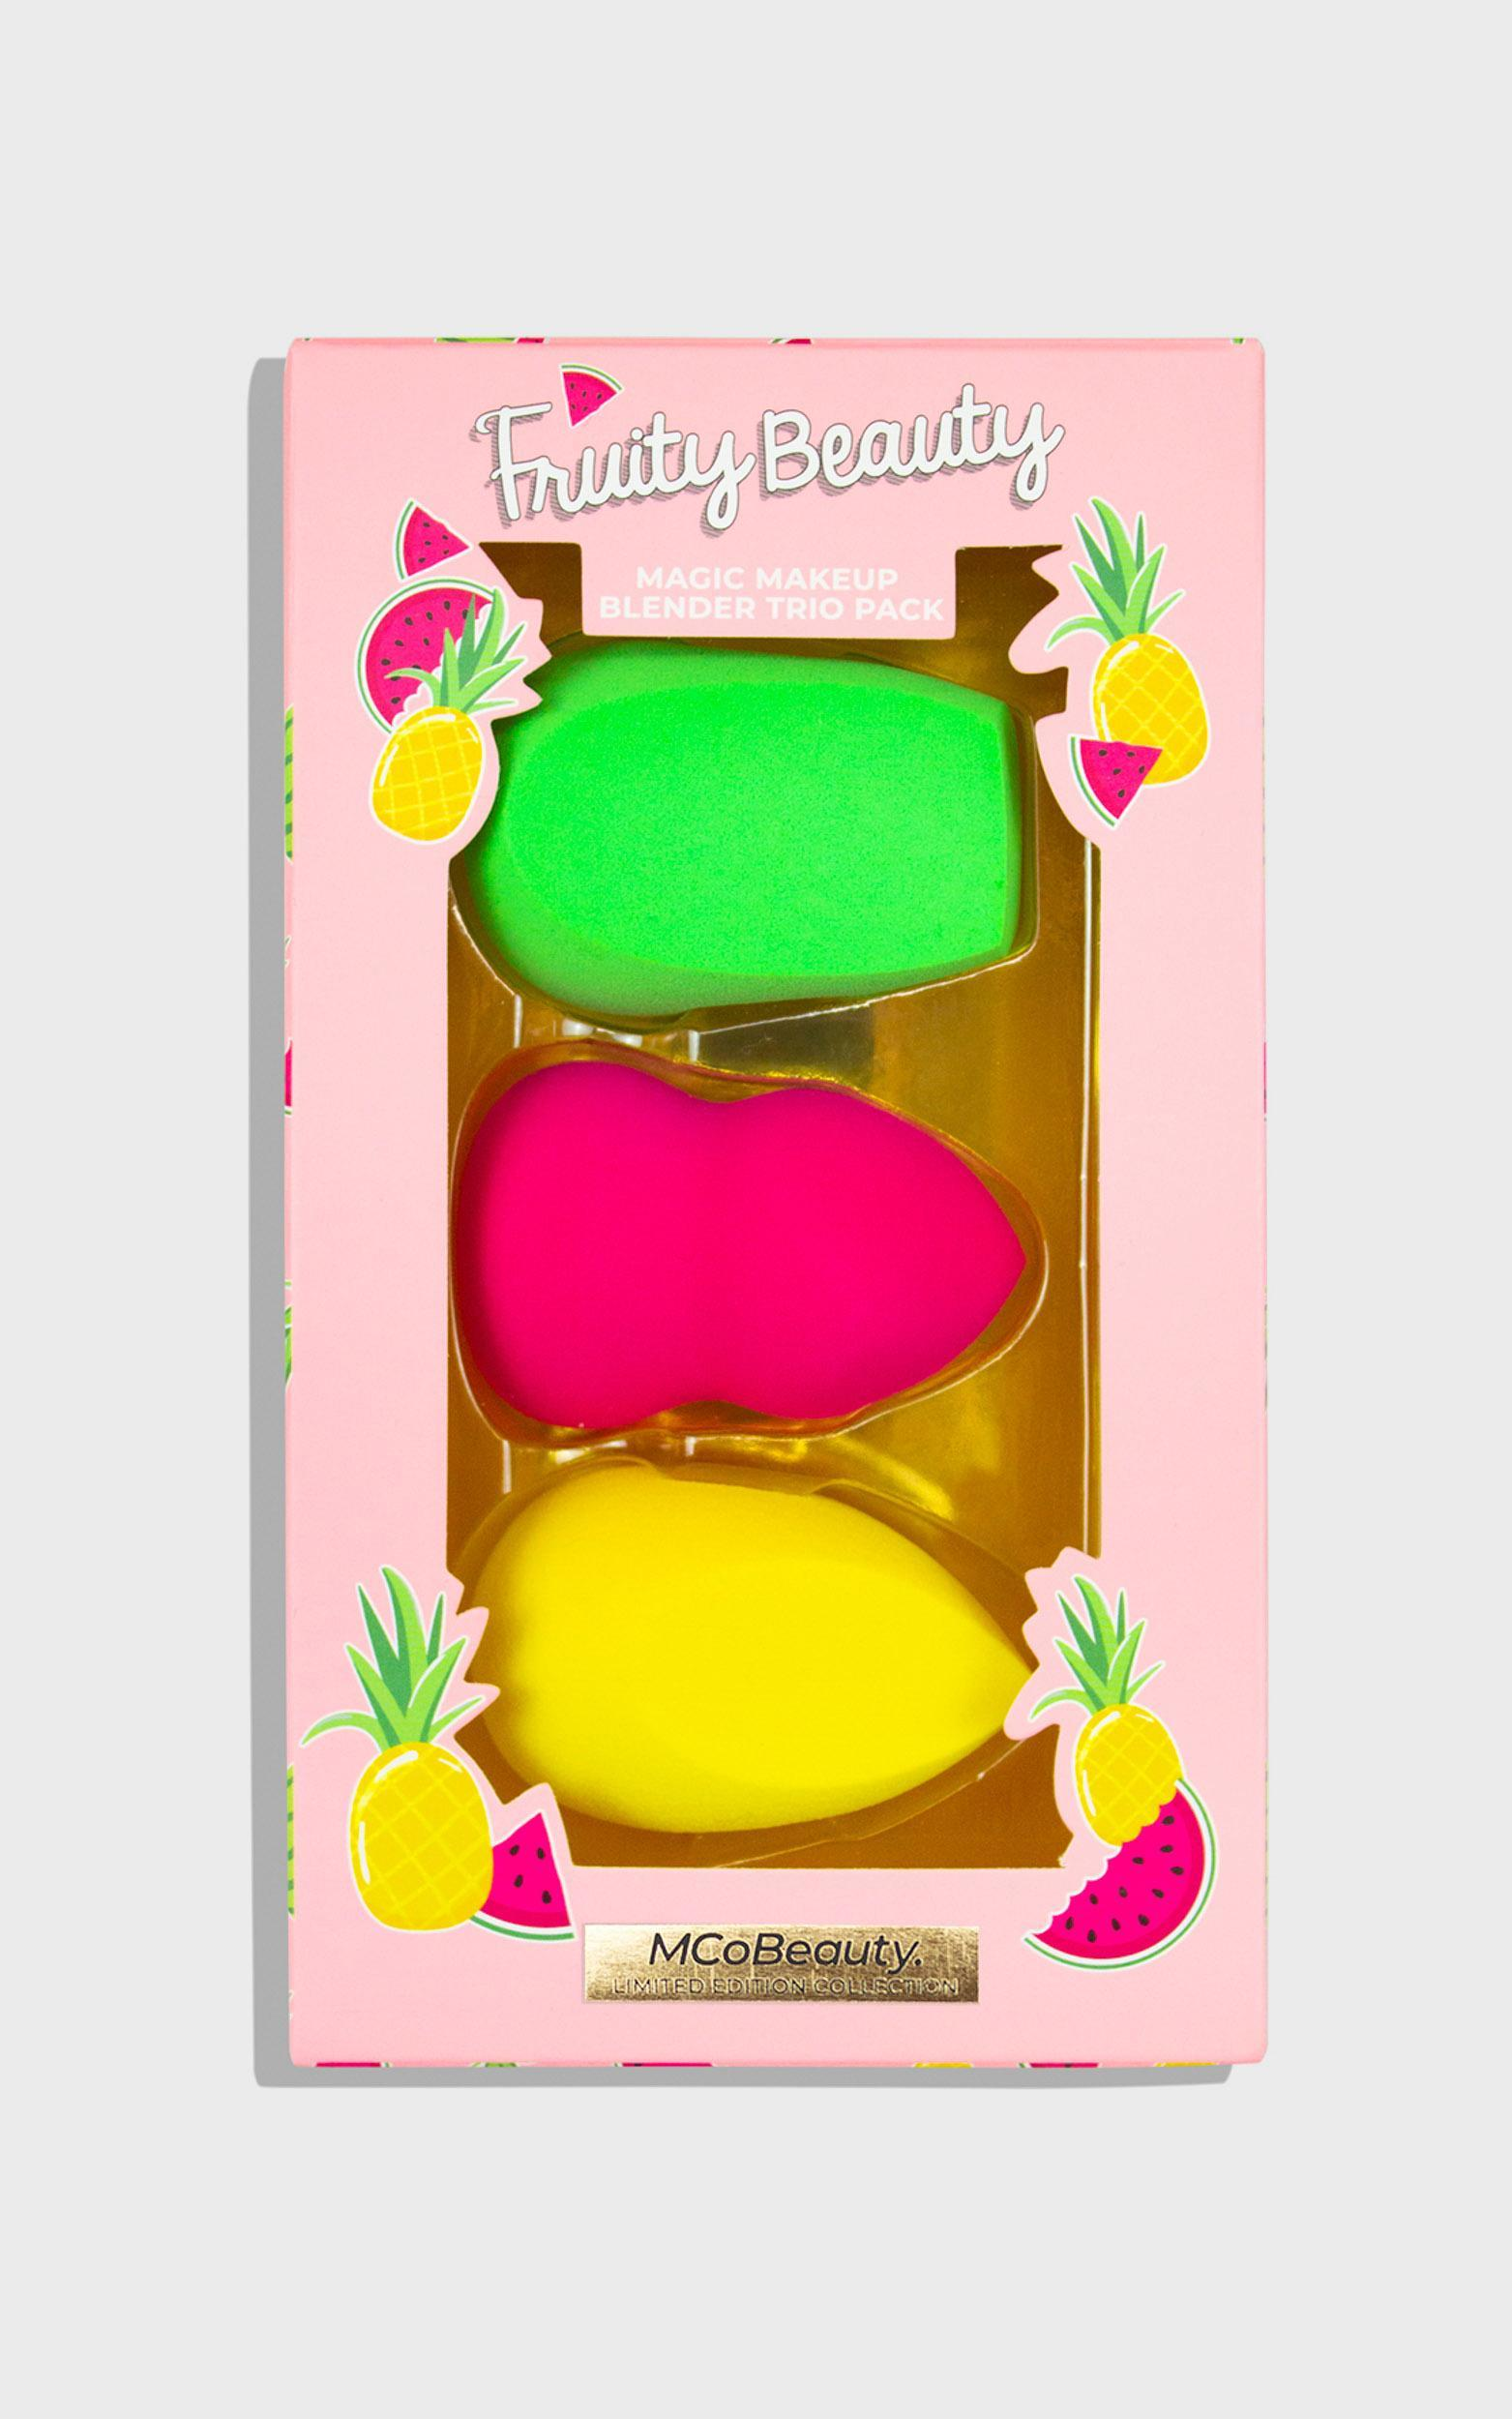 MCoBeauty - Fruity Beauty Magic Makeup Blender Trio Pack, , hi-res image number null